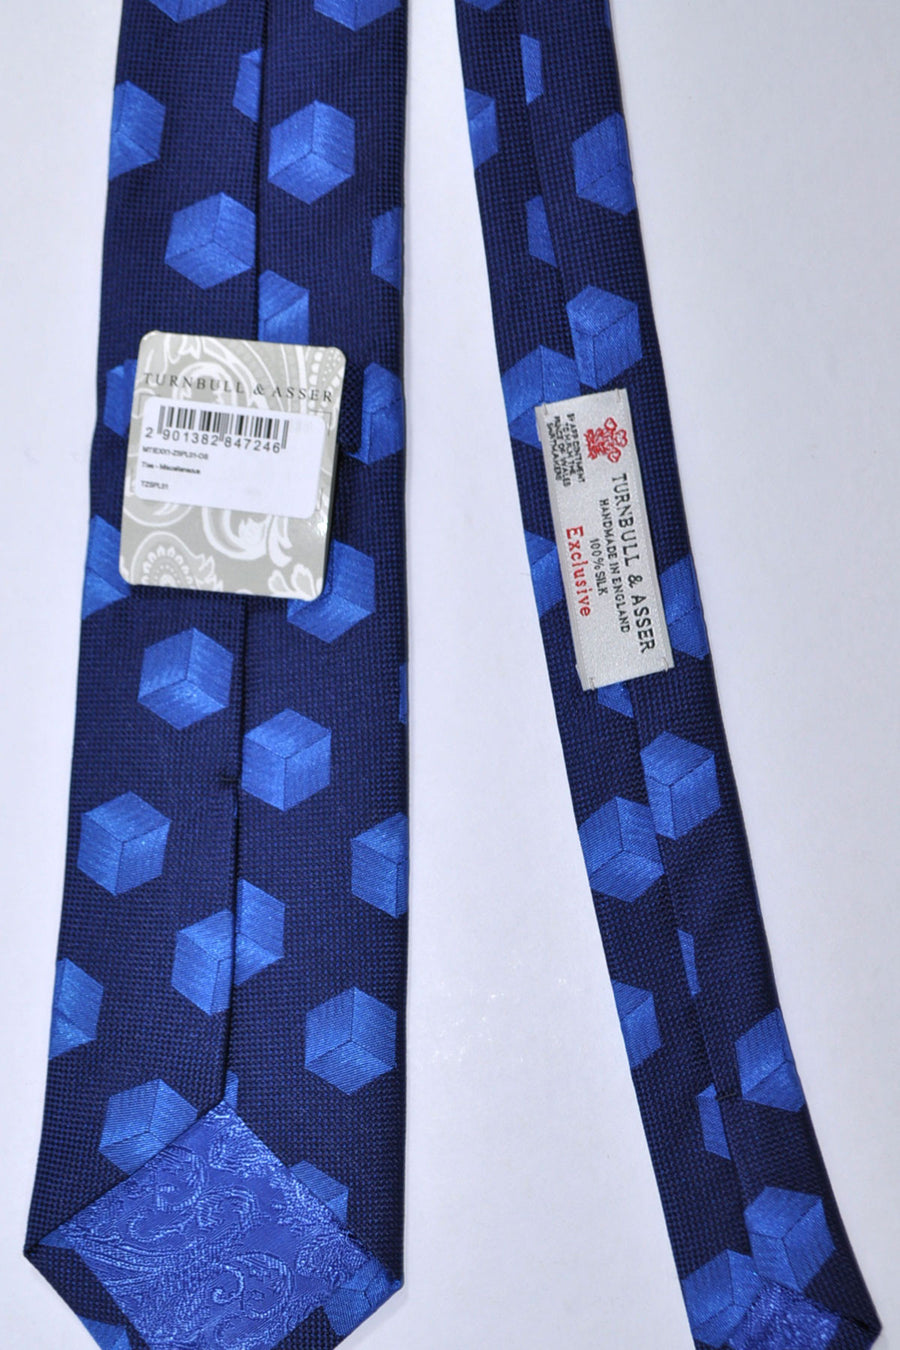 Turnbull & Asser Tie Navy Geometric Silk Blend